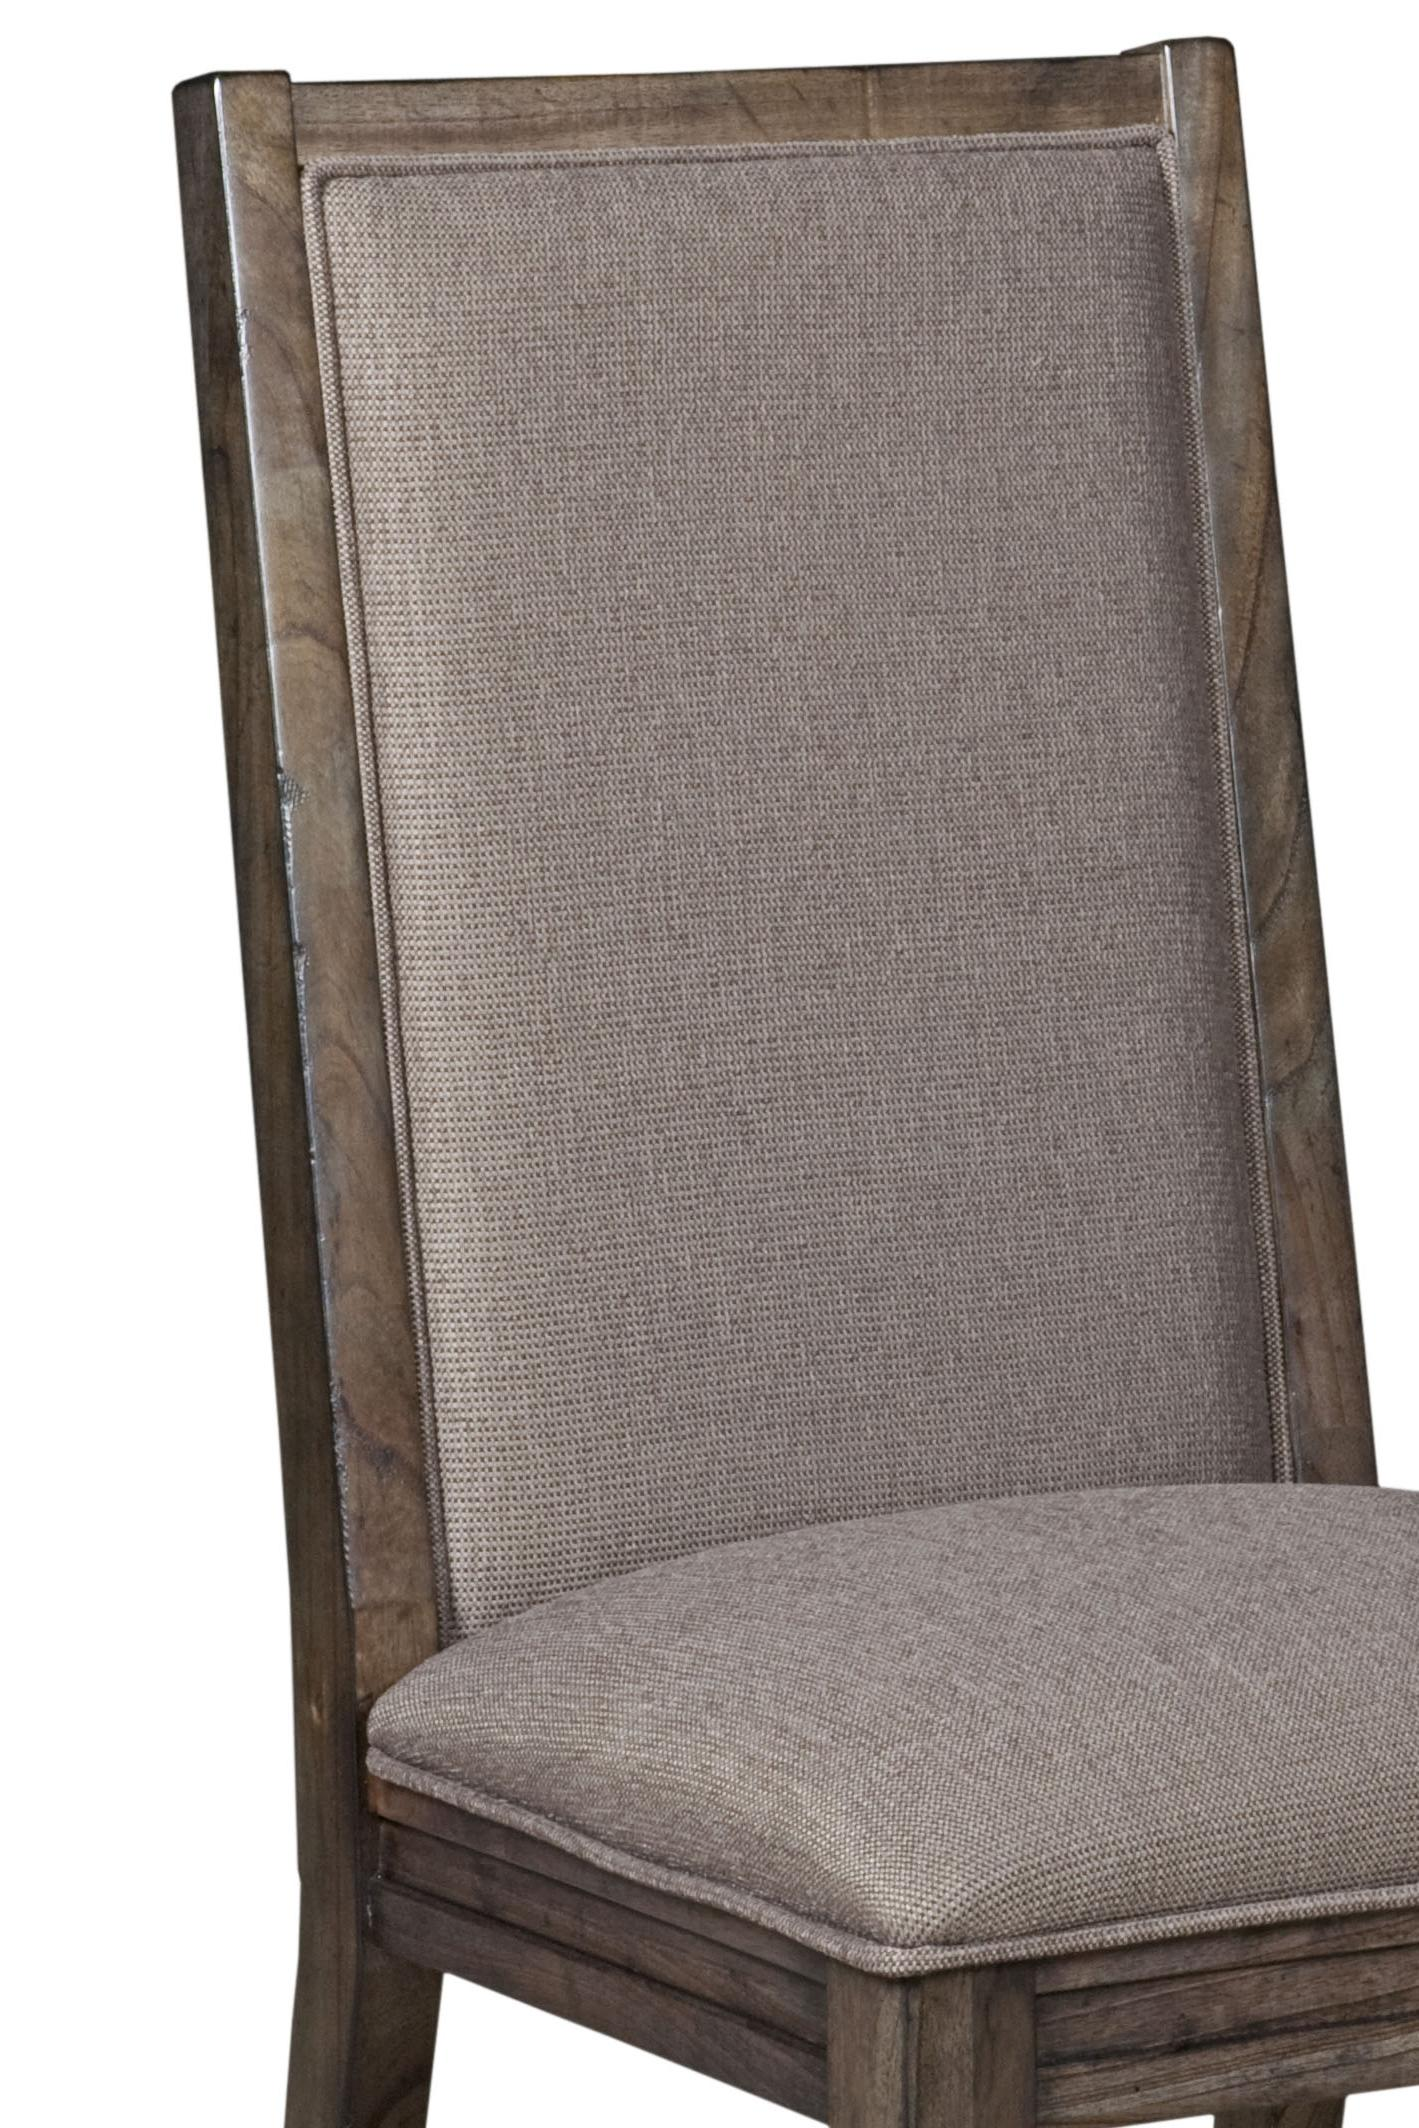 Lovely Montreat (84) By Kincaid Furniture   Belfort Furniture   Kincaid Furniture  Montreat Dealer